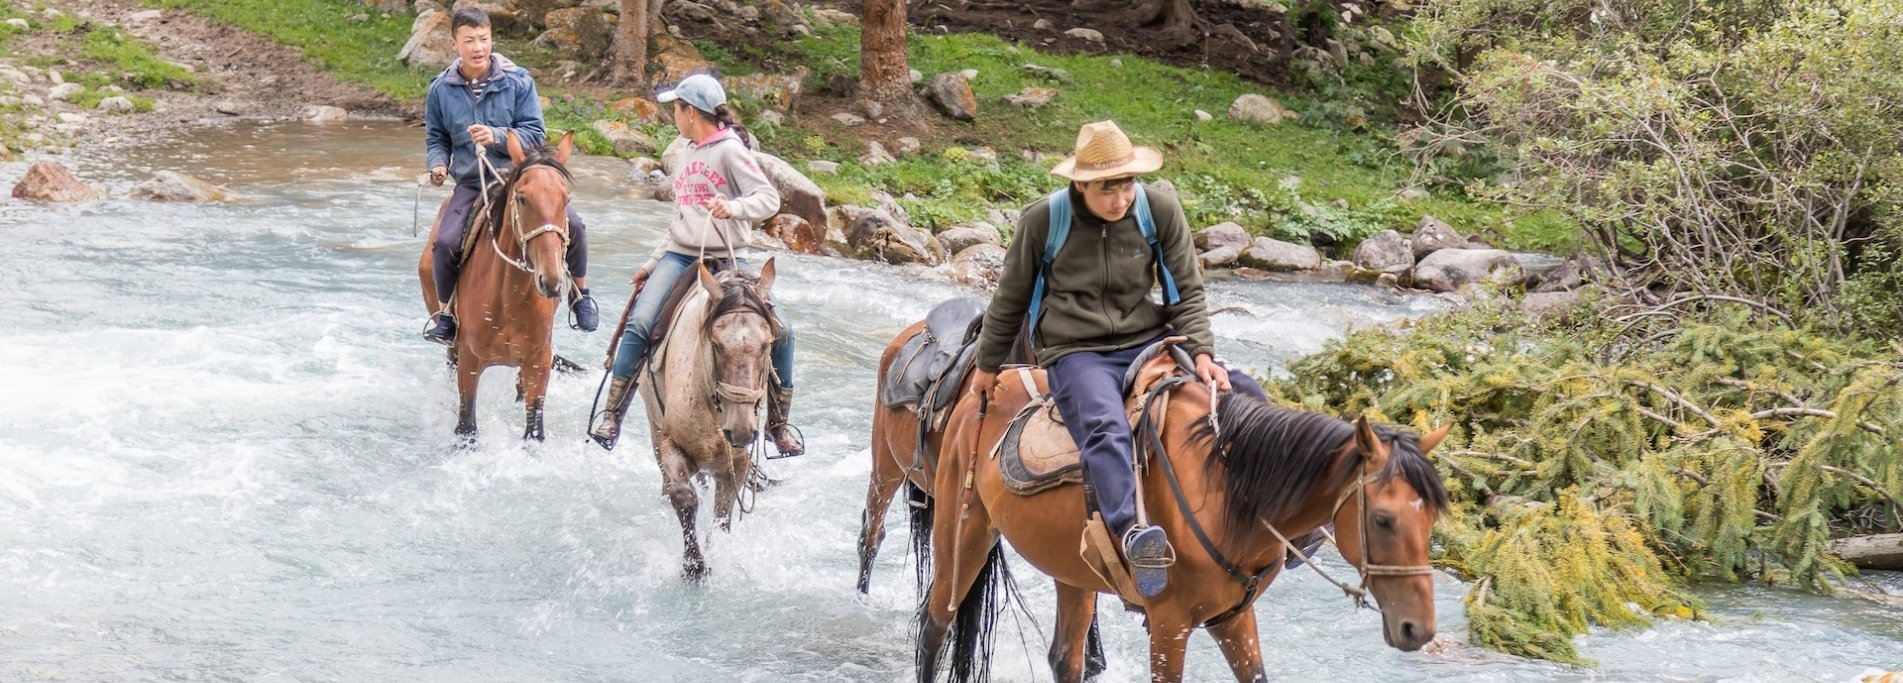 Horse riding in Chon-Kemin valley - Adventure tour in Kyrgyzstan